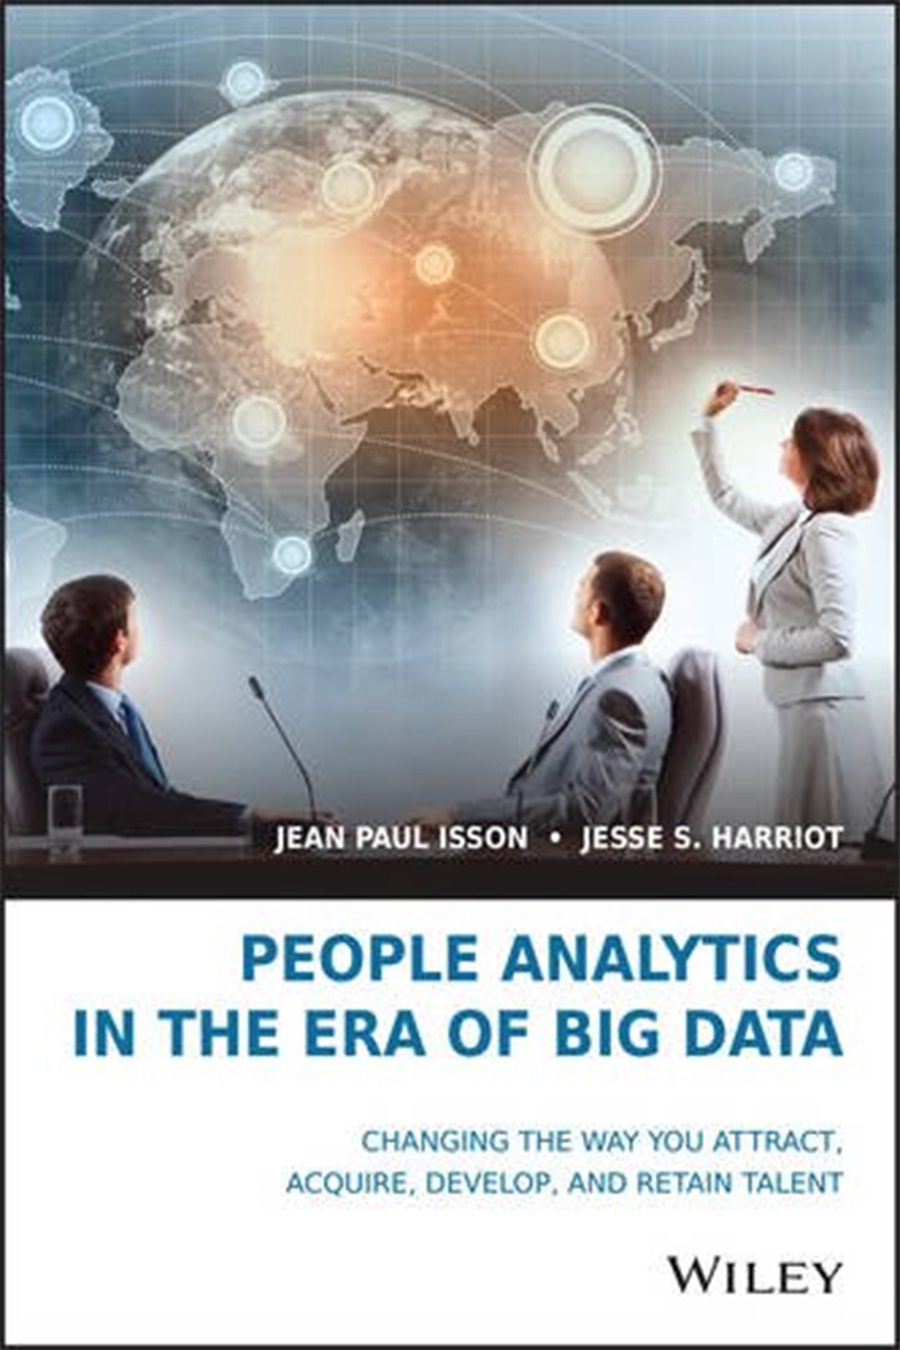 People Analytics in the Era of Big Data, Jean-Paul Isson